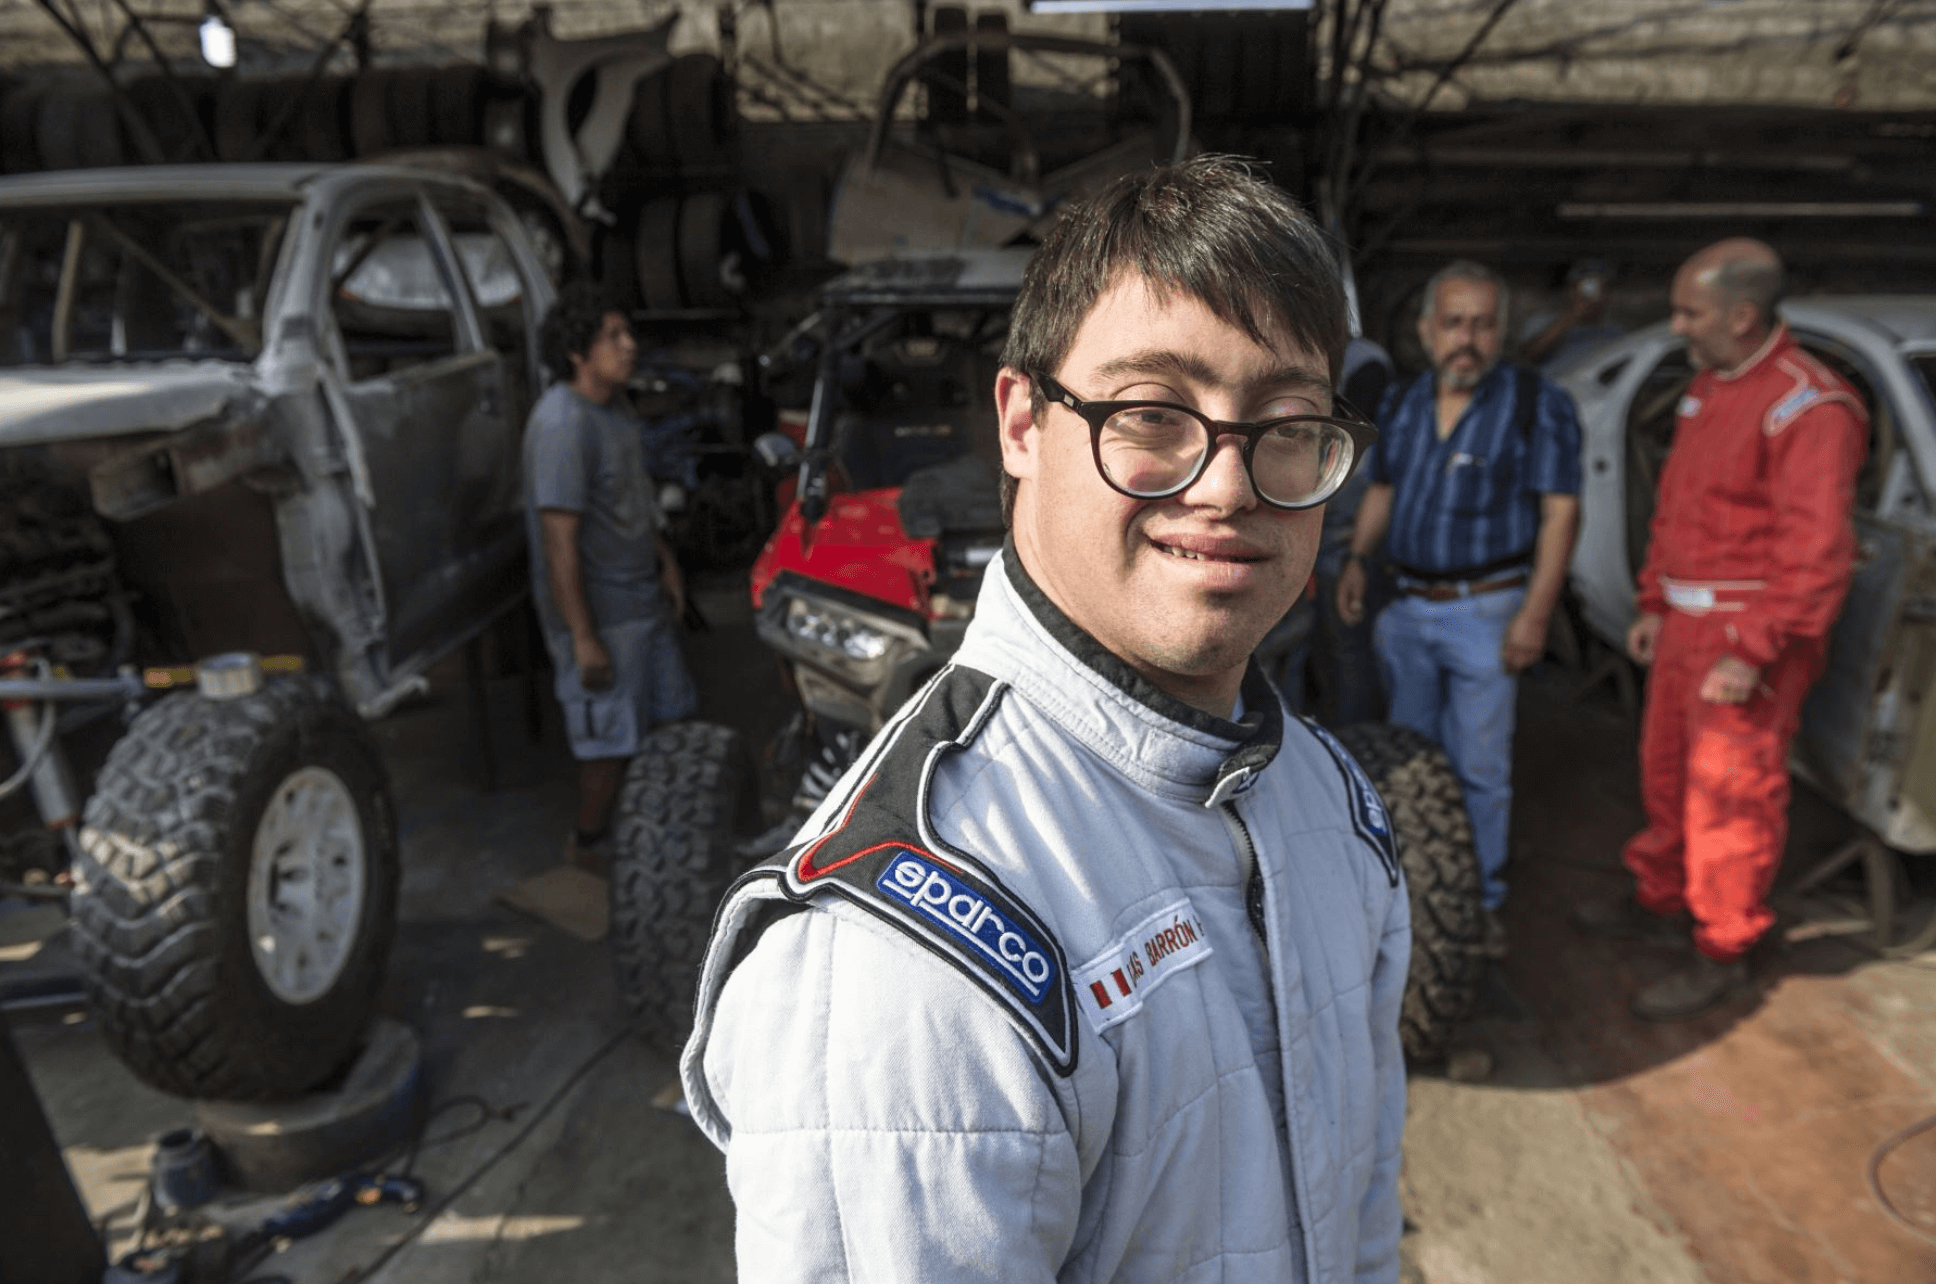 Peruvian driver with Down Syndrome set to make history at the Dakar Rally